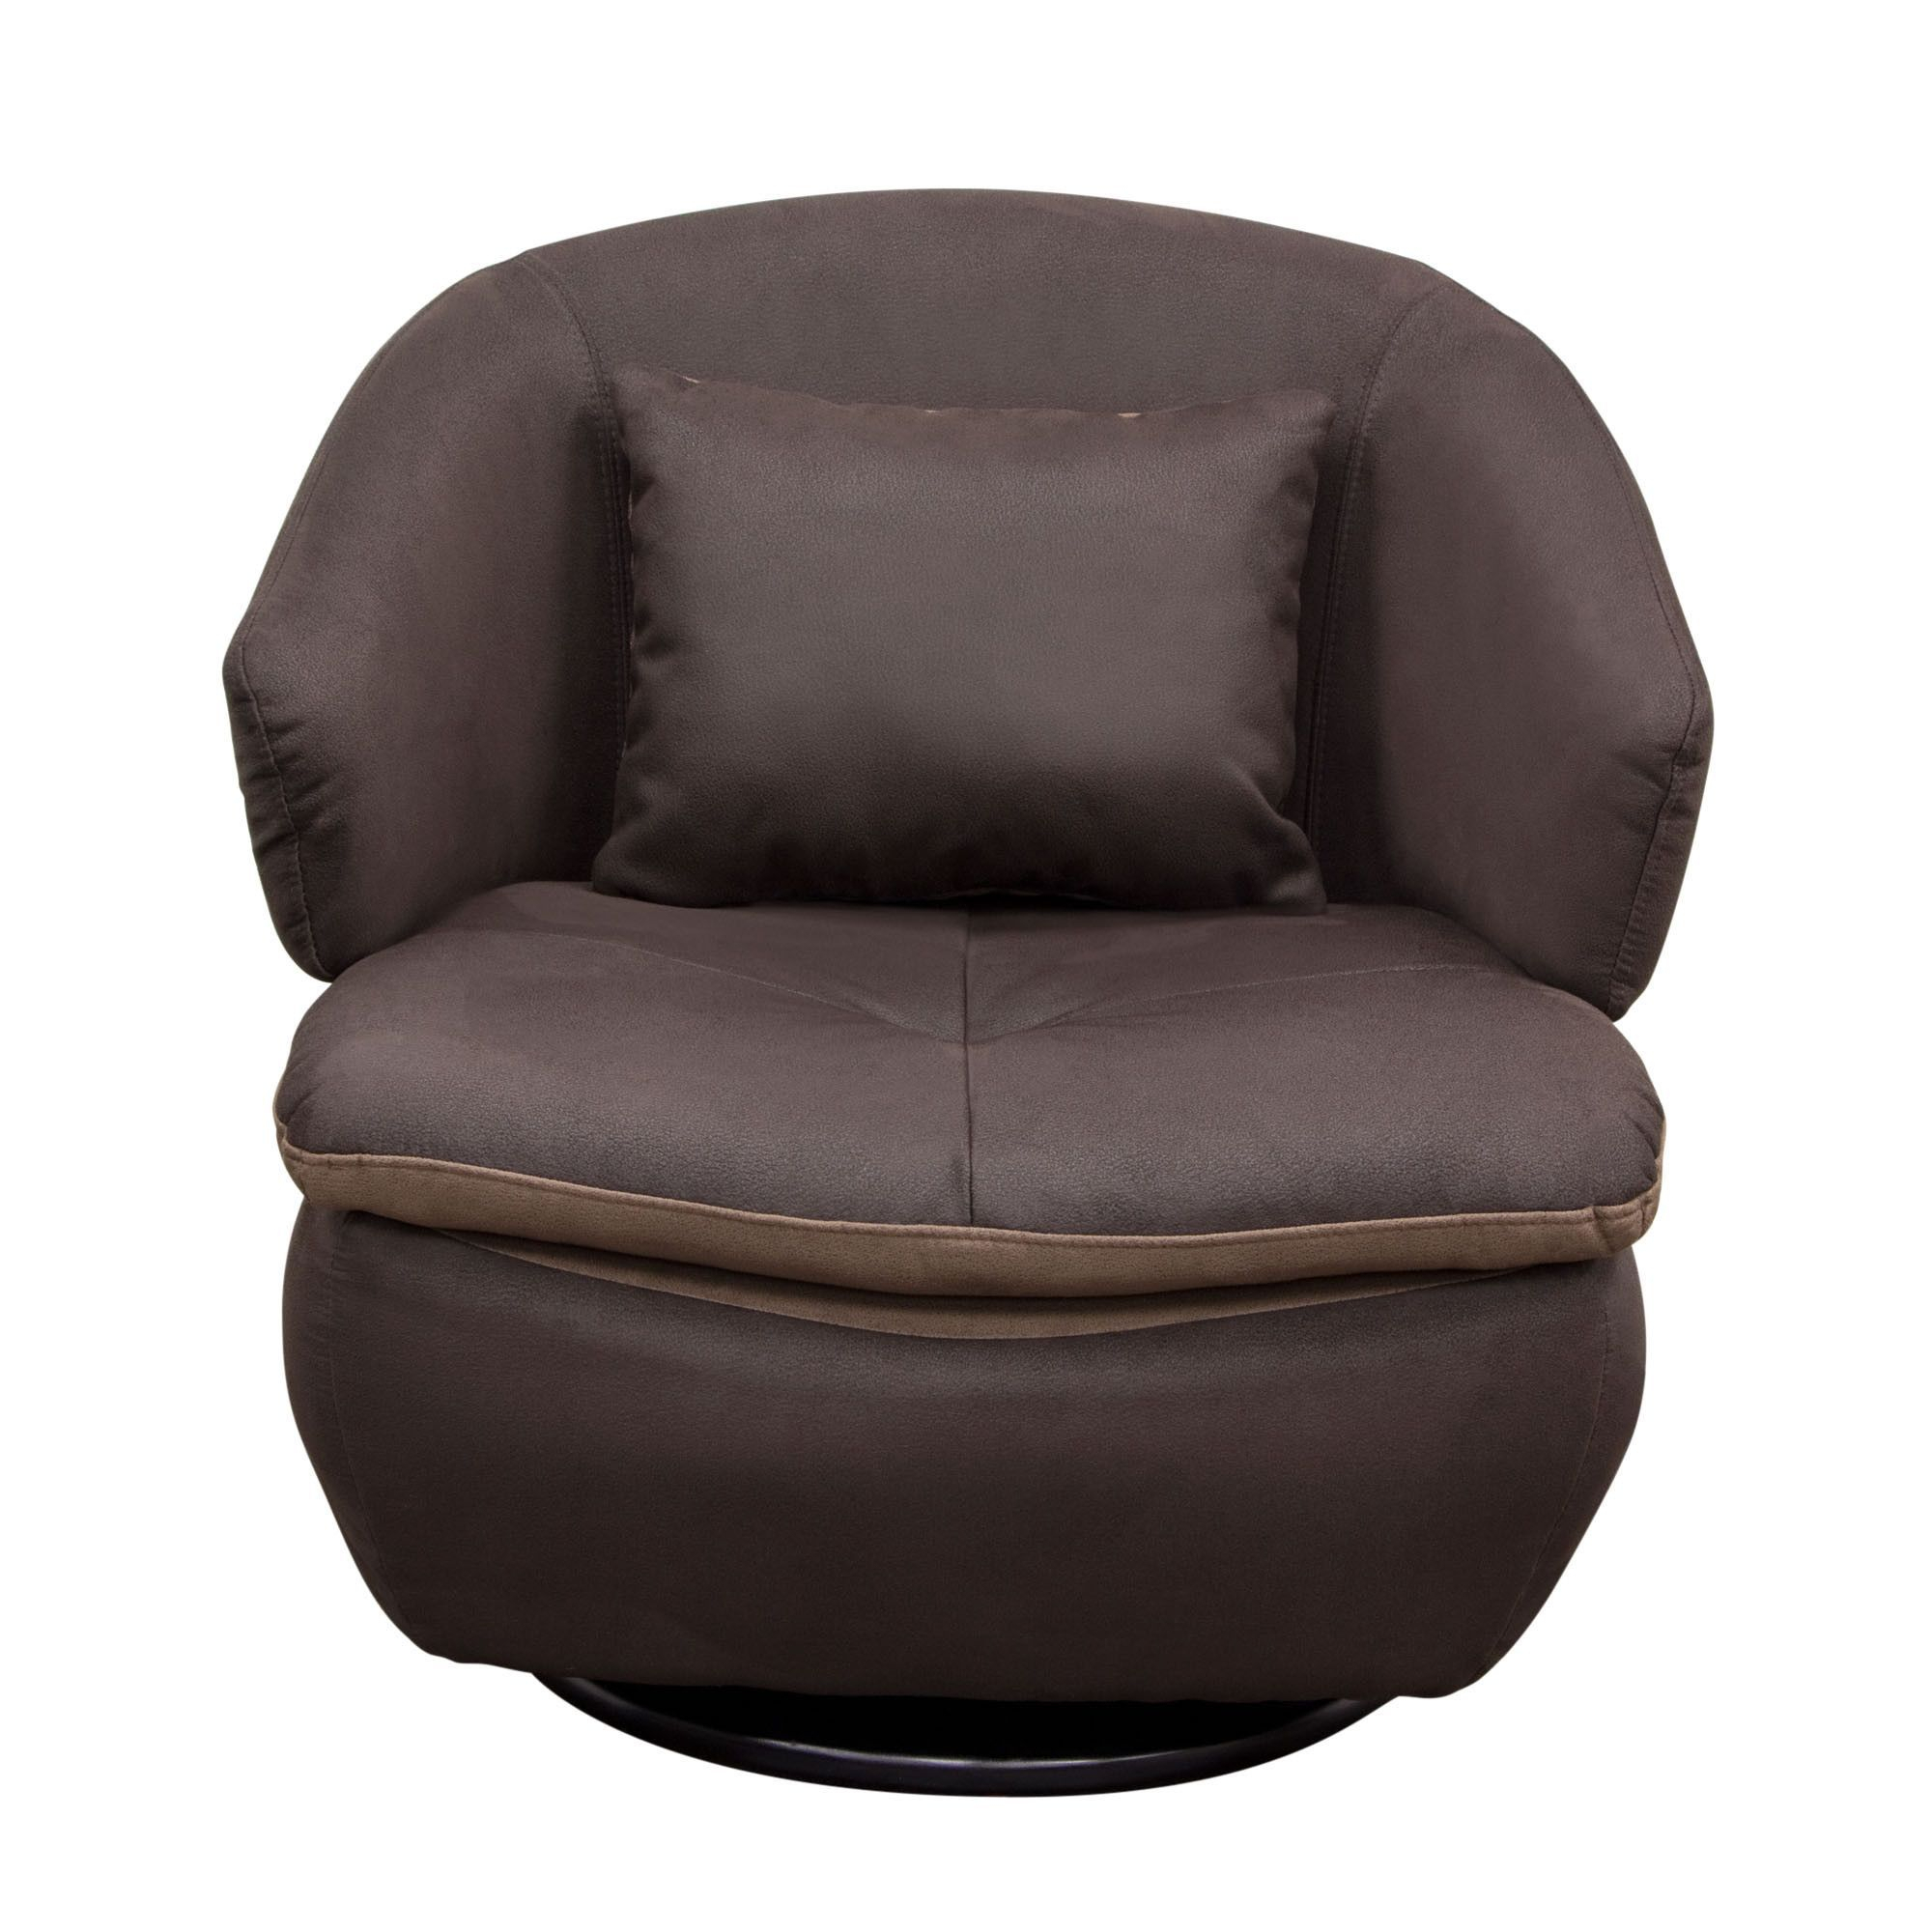 Rio Swivel Accent Chair In Brown Fabricdiamond Sofa | Products Pertaining To Twirl Swivel Accent Chairs (Photo 4 of 20)